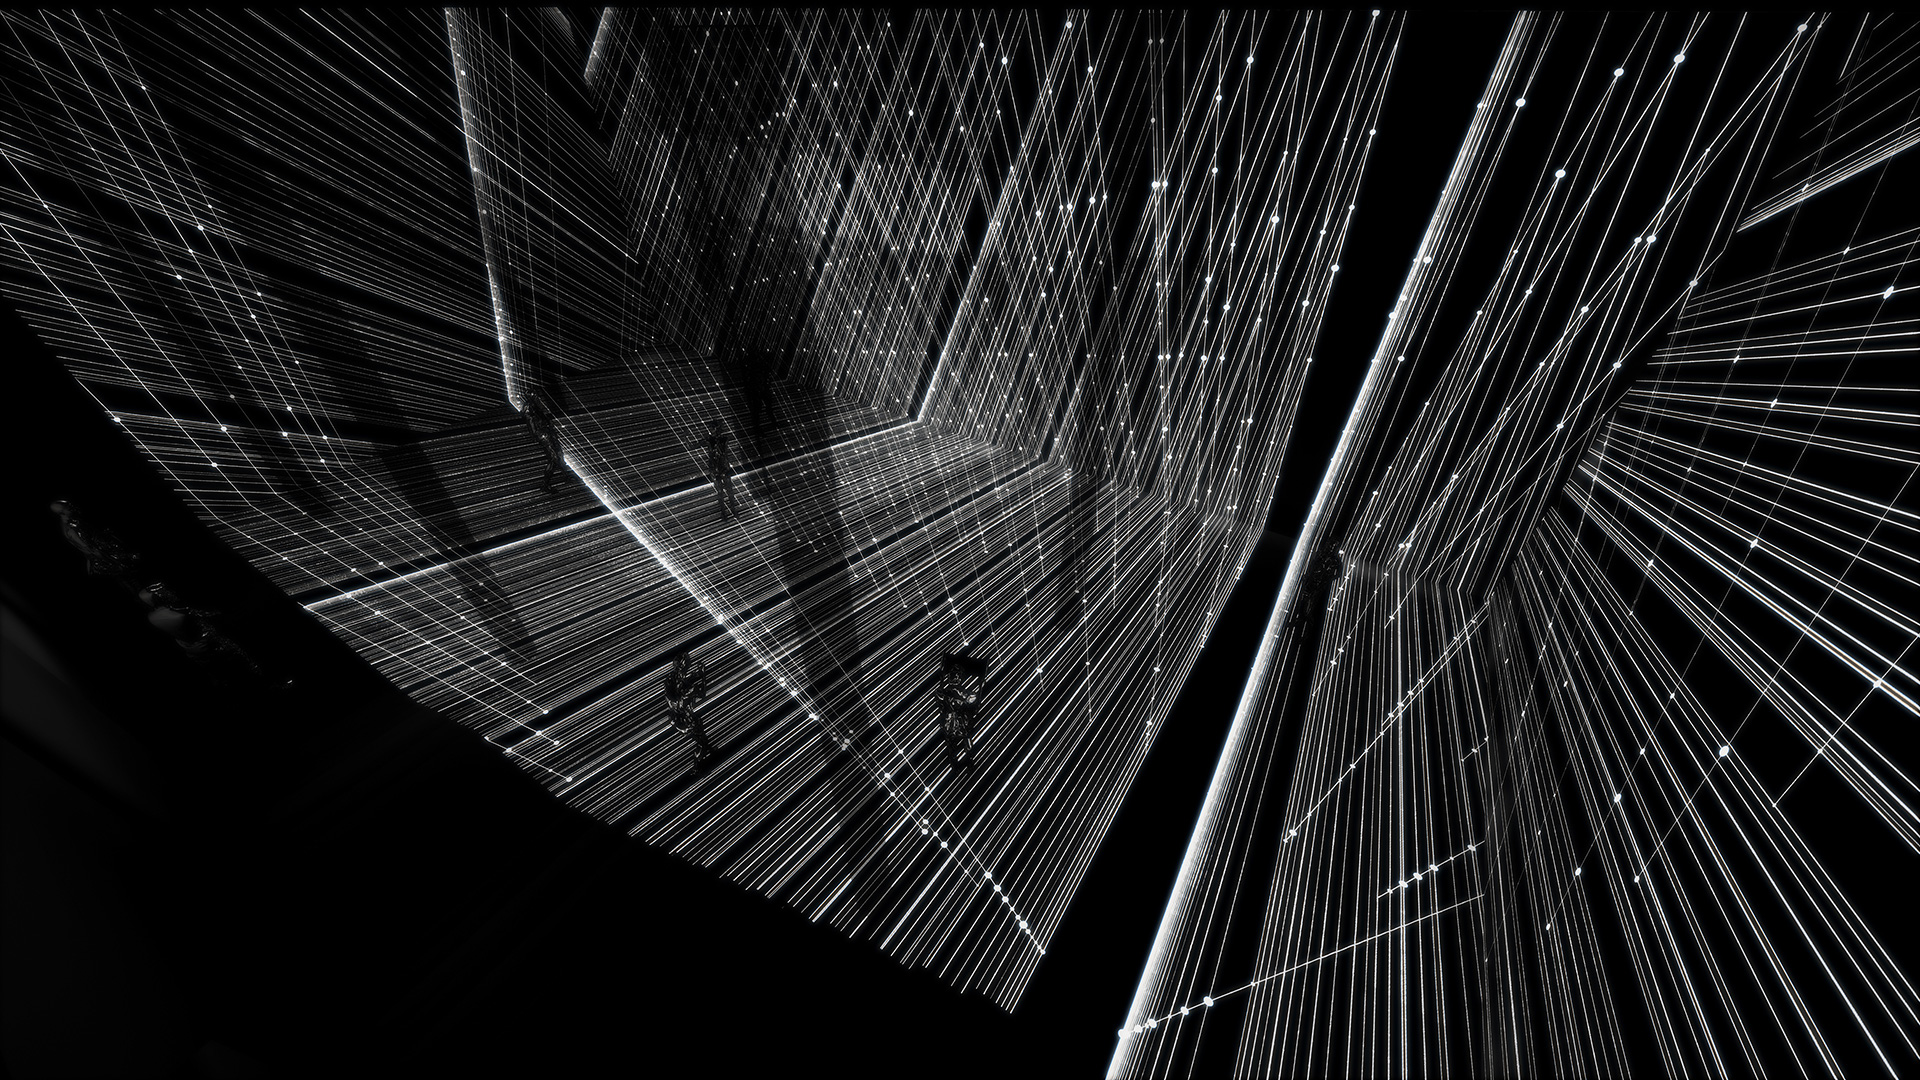 Still 7, Machine Hallucination| Machine Hallucination| Refik Anadol| Artechouse| STIR